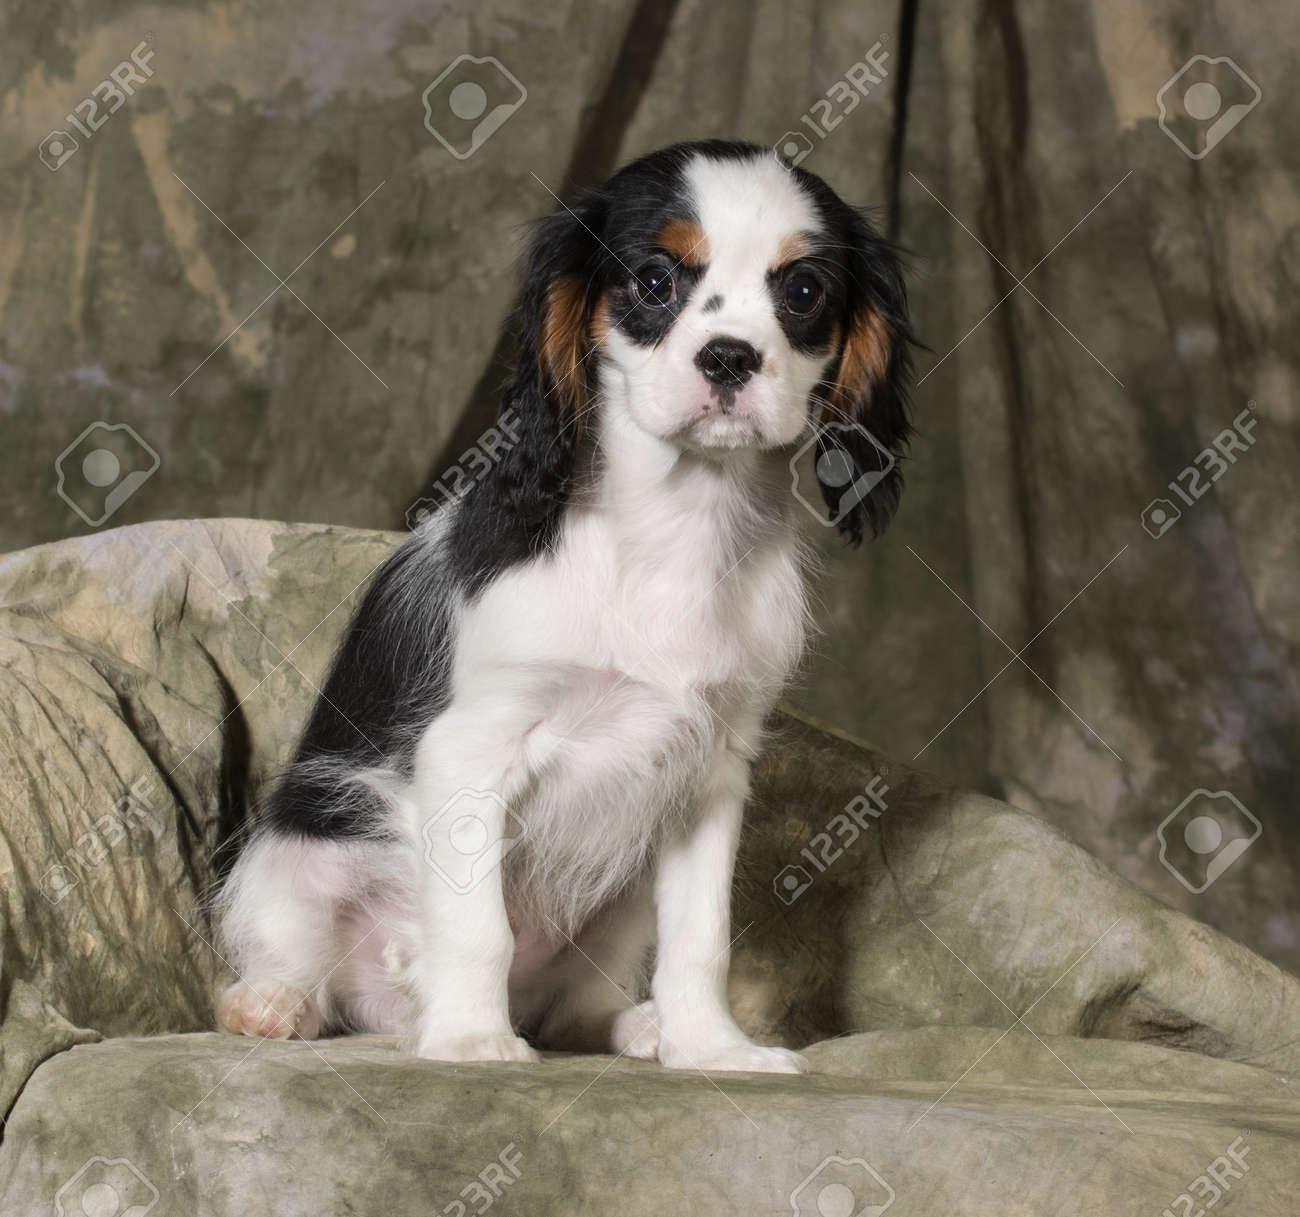 Cavalier King Charles Spaniel Puppy Tri Color 3 Months Old Stock Photo Picture And Royalty Free Image Image 26720212